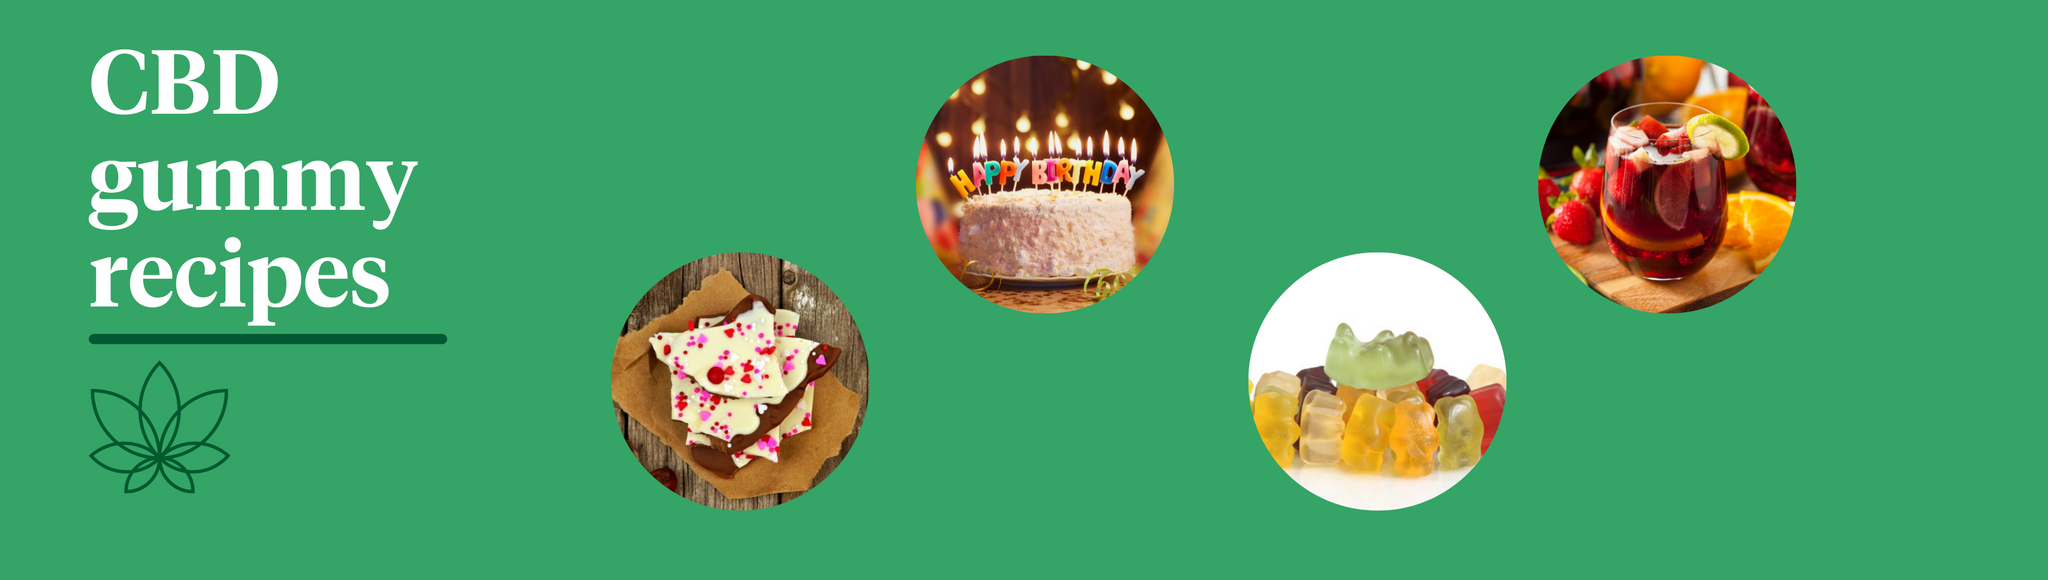 """A green background with the Supreme CBD logo with white text saying """"CBD gummy recipes"""" with four images of white chocolate brittle, a birthday cake, surfing gummy bears and sangria."""